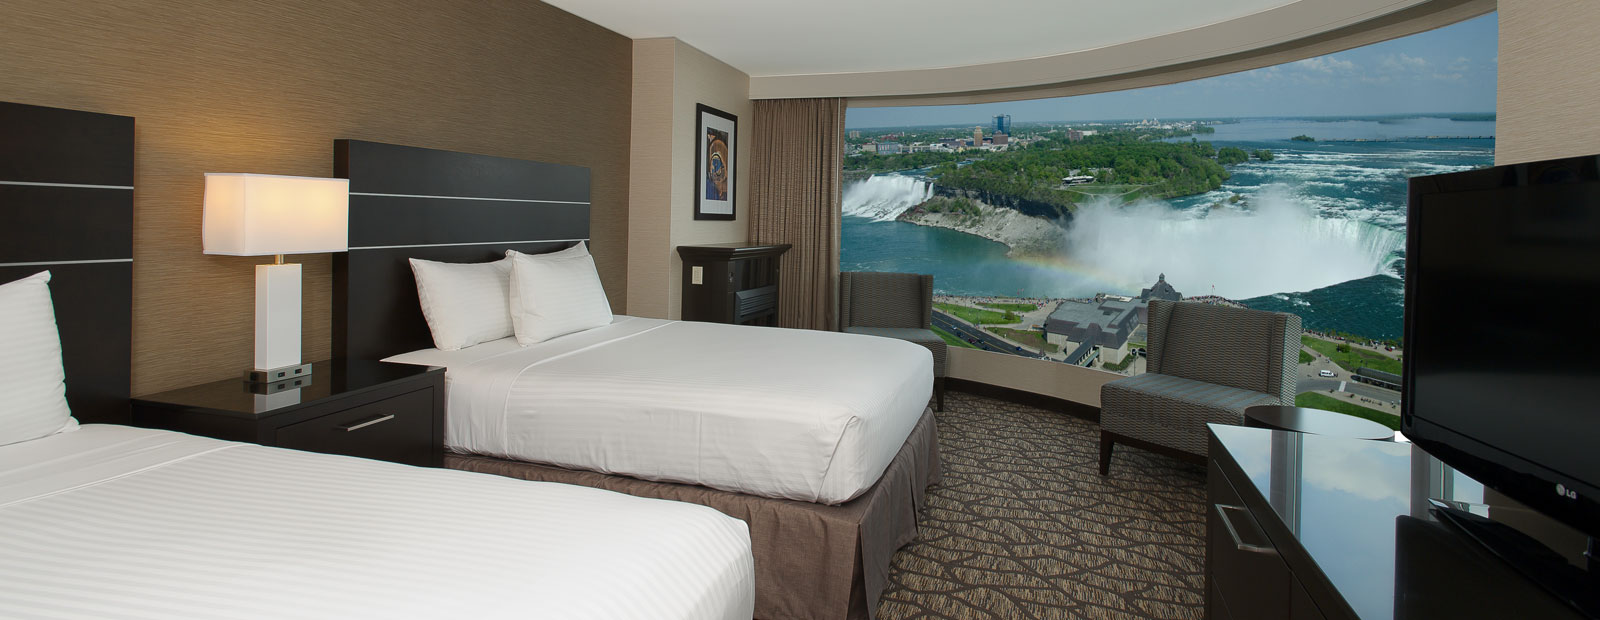 Embassy Suites by Hilton - Niagara Falls - Fallsview - Hotel Suites